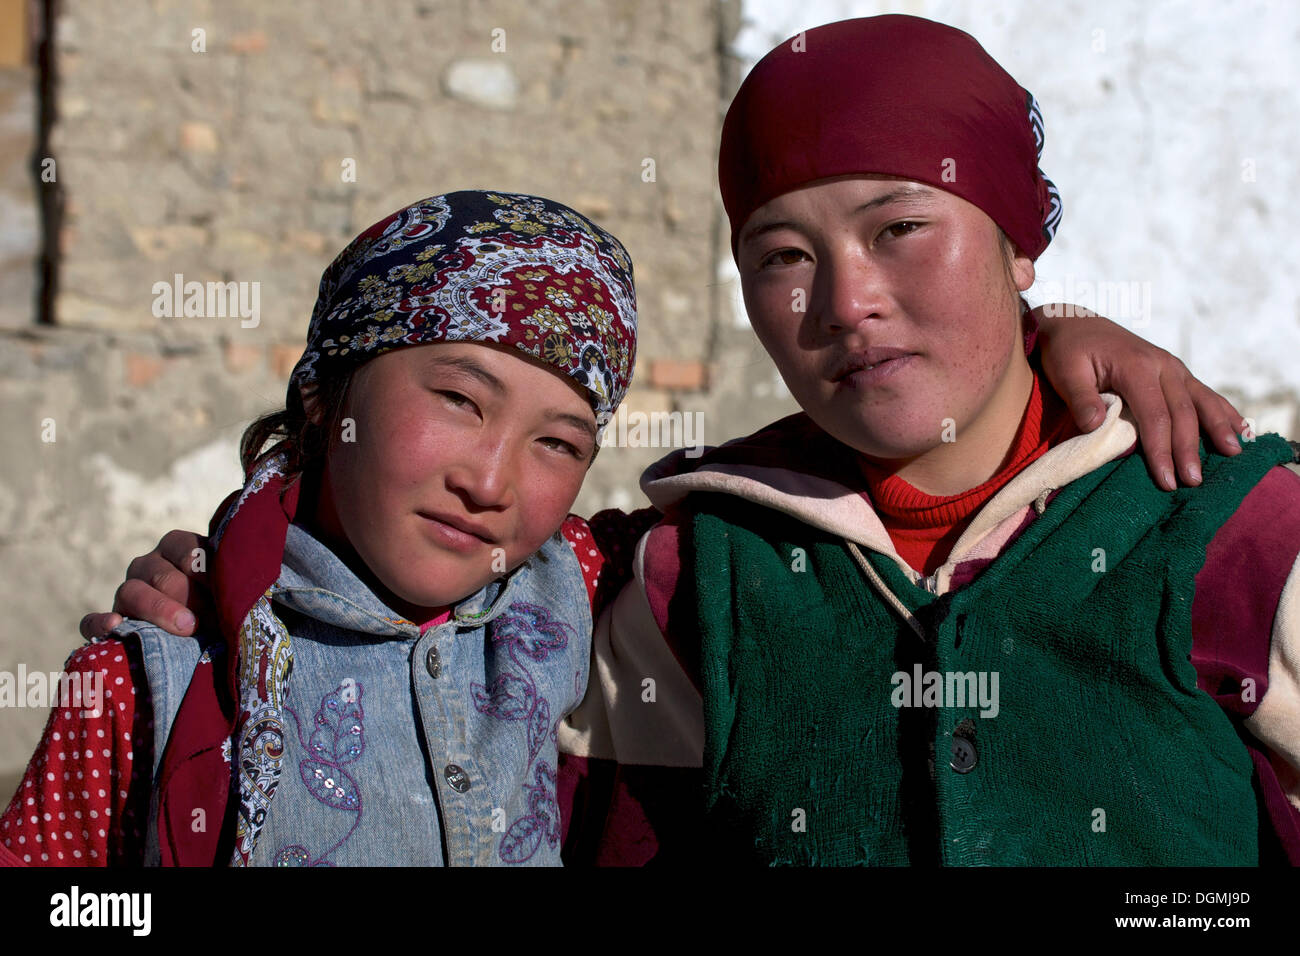 Central Asian People 28